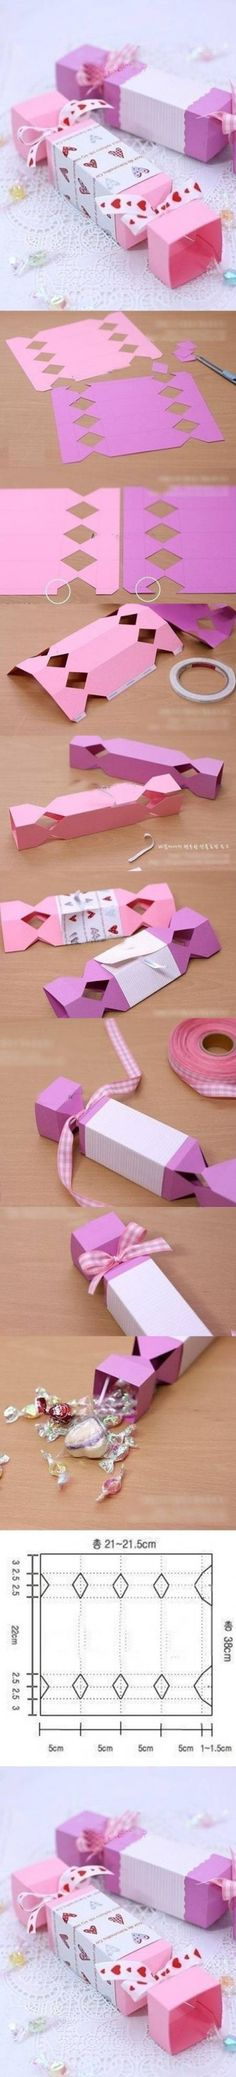 DIY Cute Candy Gift Box DIY Projects